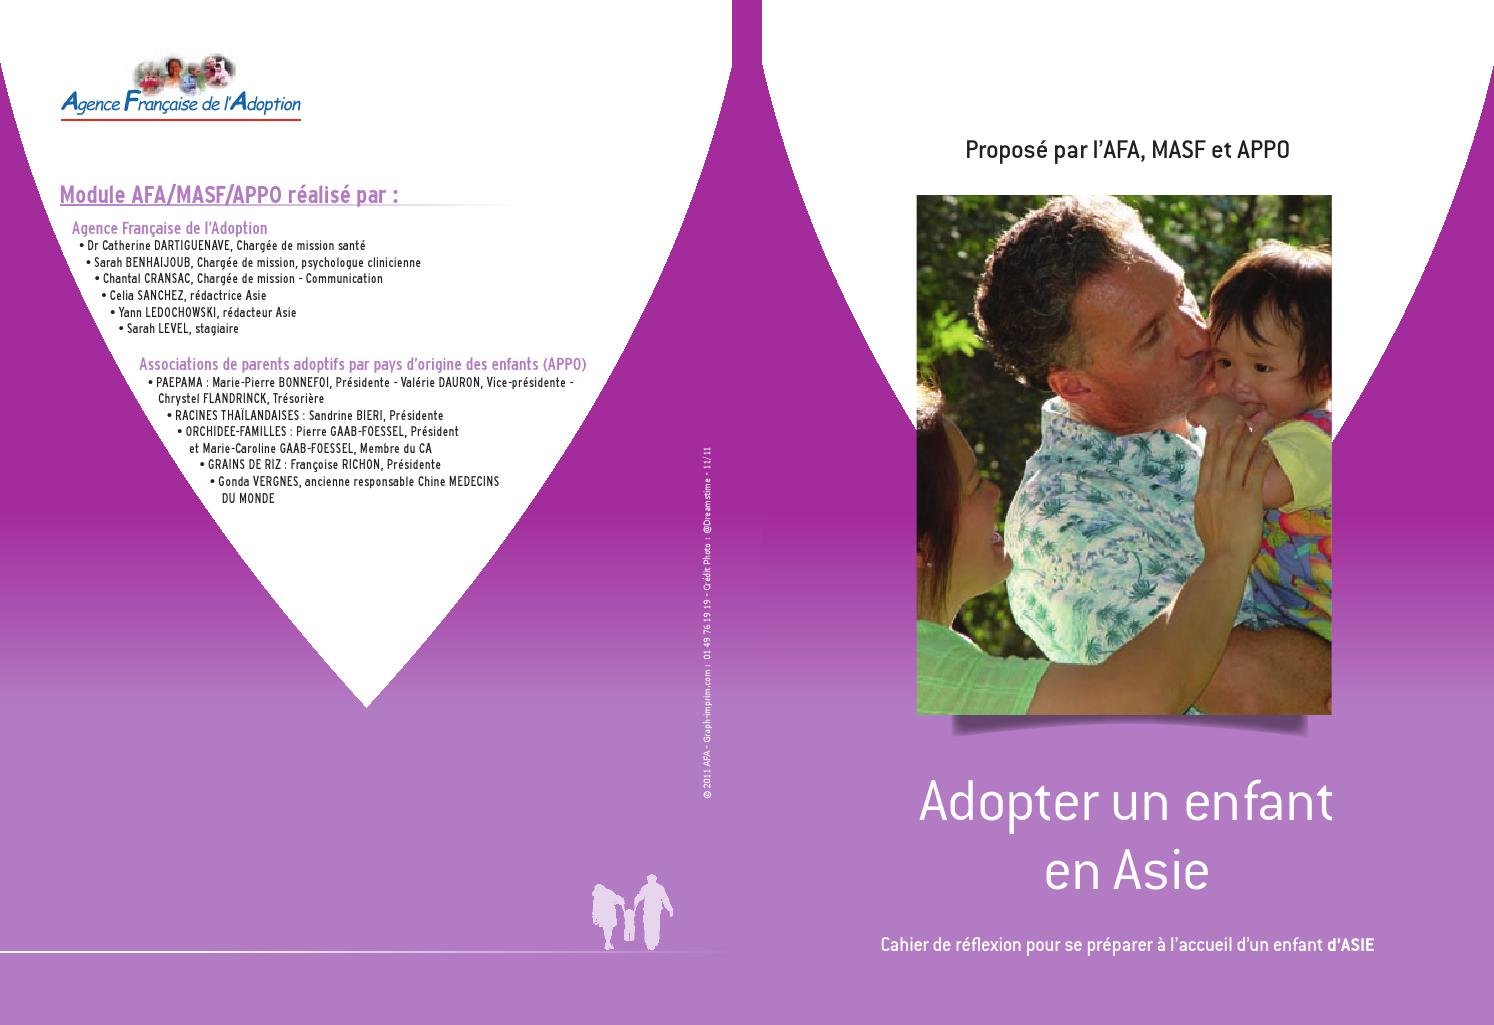 Cahier asie by agence fran aise adoption afa issuu for Agence francaise du paysage velizy